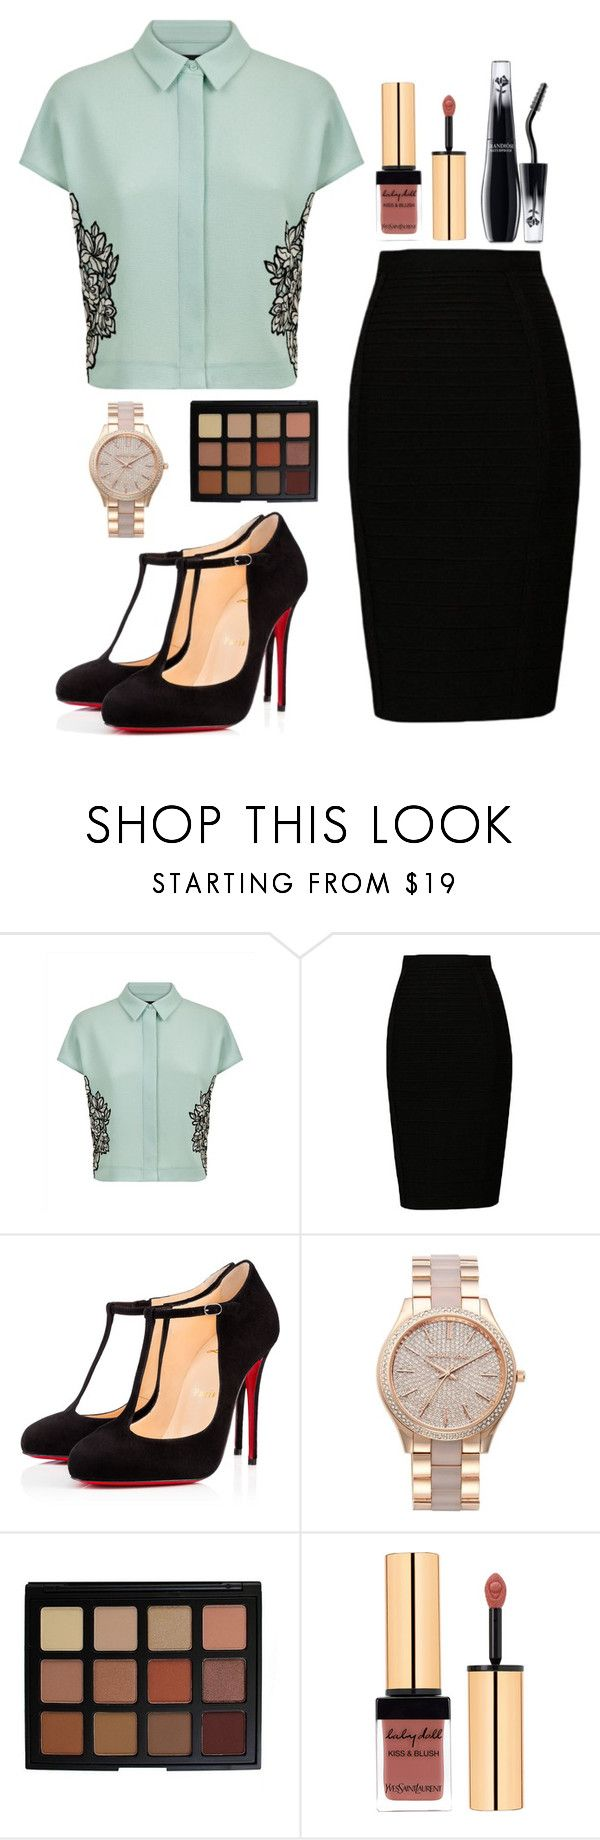 """Work. Work. Work."" by lightbody-joanna on Polyvore featuring Jaeger, Christian Louboutin, MICHAEL Michael Kors, Morphe, Yves Saint Laurent and Lancôme"